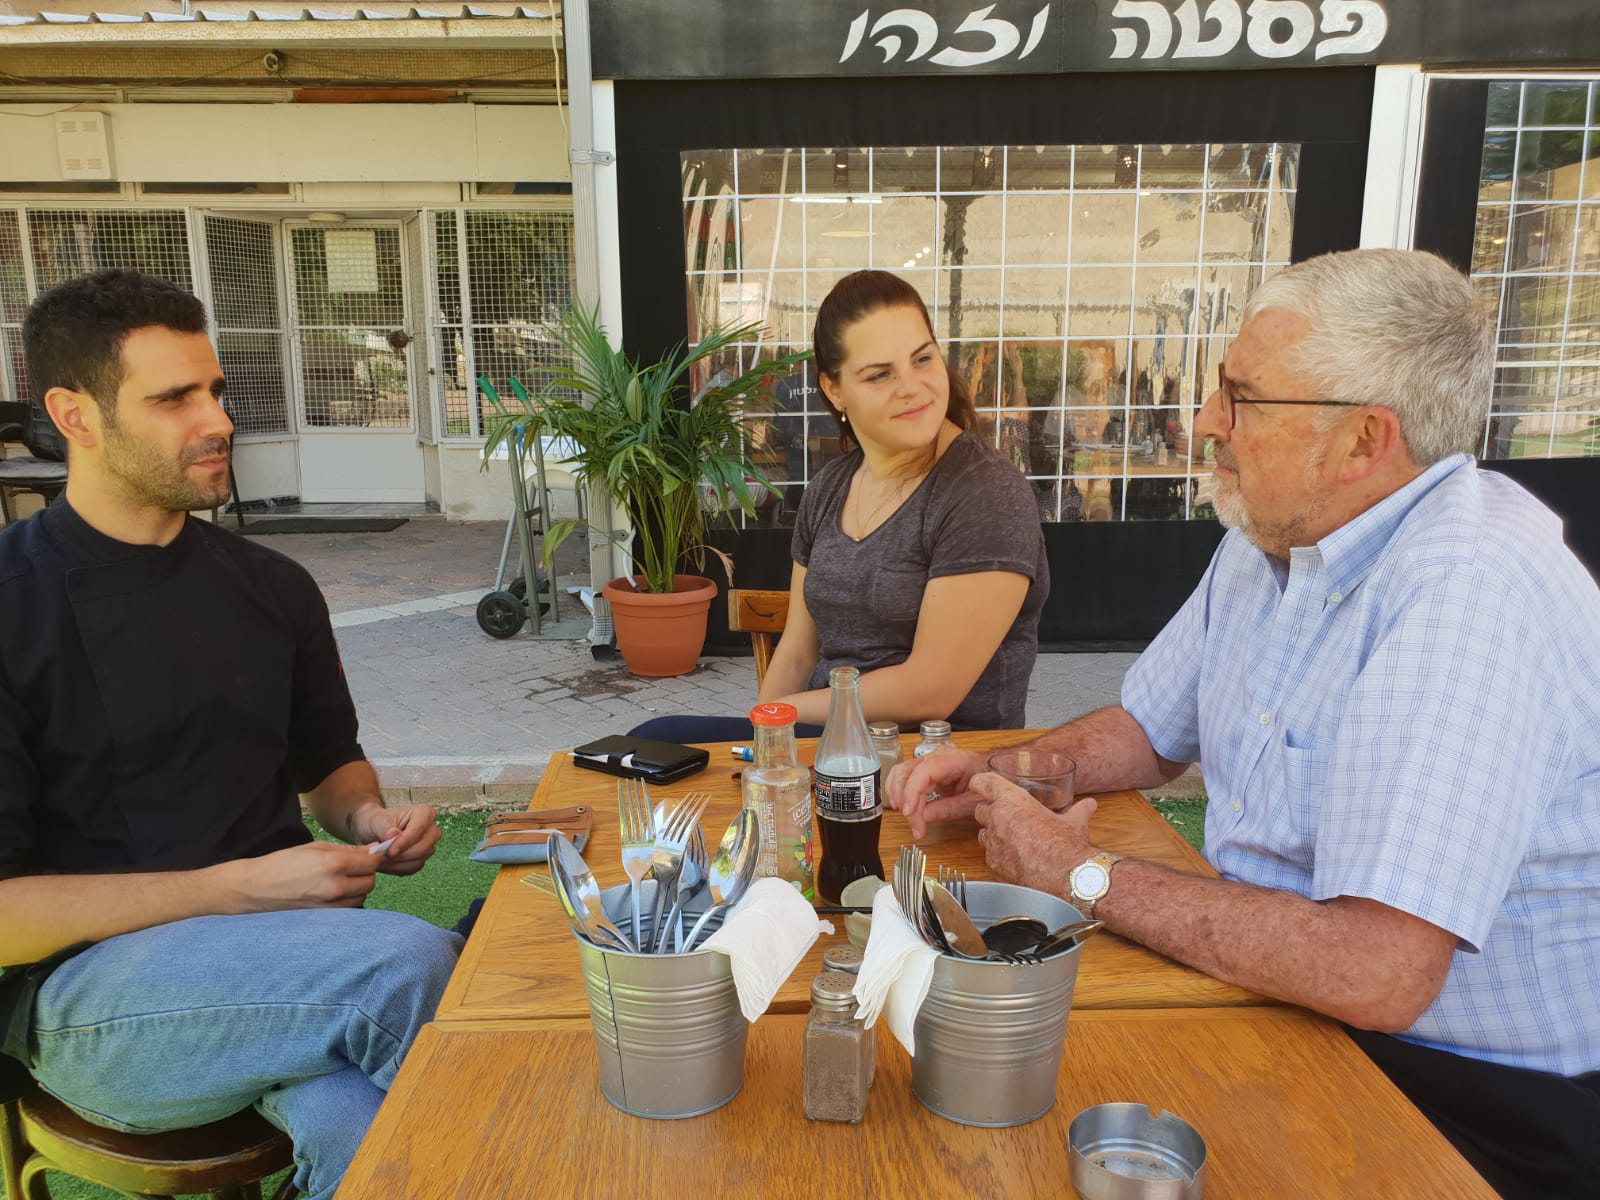 Shir Lengy and Idan Kadosh meet with Jewish Agency CEO and Director General, Alan Hoffmann at their restaurant, 'Pasta v'Zehu